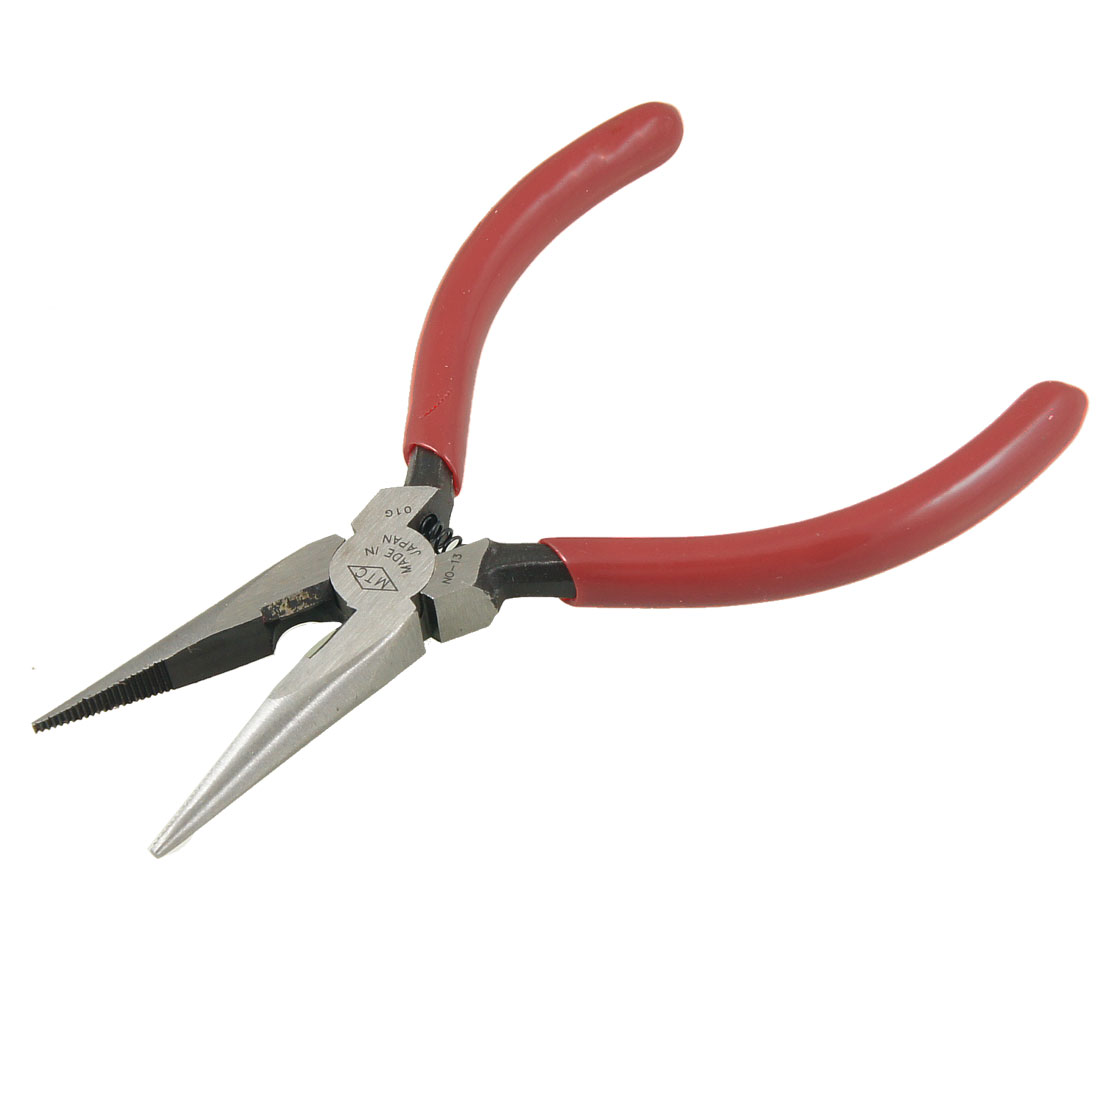 "Red Plastic Coated Grips 5"" Long Straight Cutting Repairing Needle Nose Pliers"